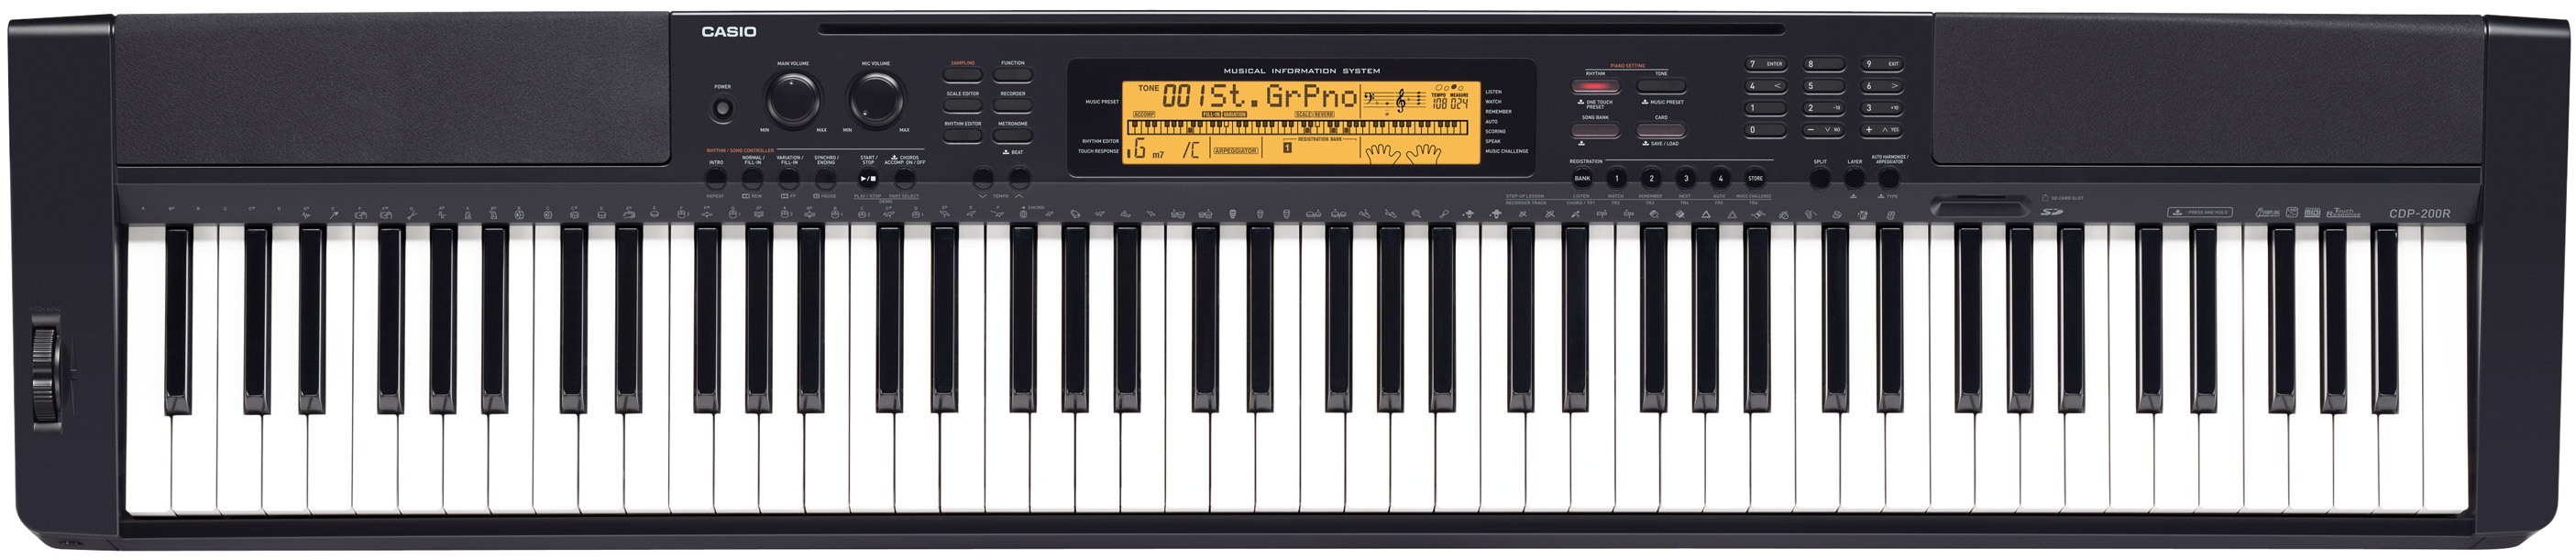 how to learn casio keyboard at home pdf